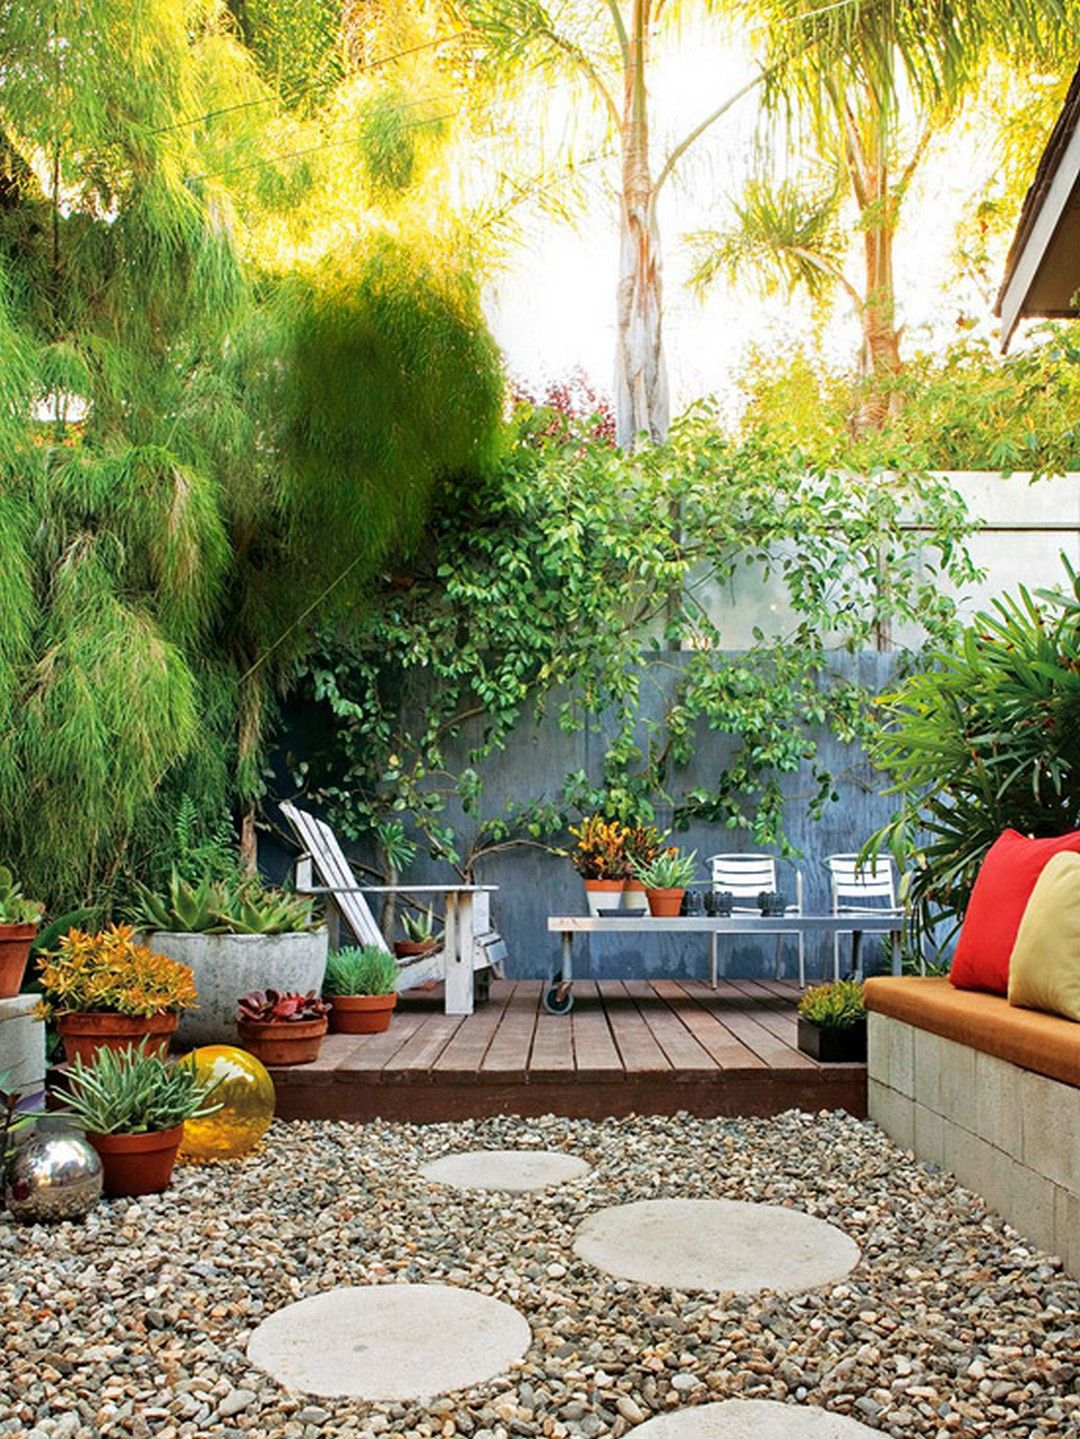 Cool 50 Fantastic Small Patio Ideas On A Budget Https://www.architecturehd